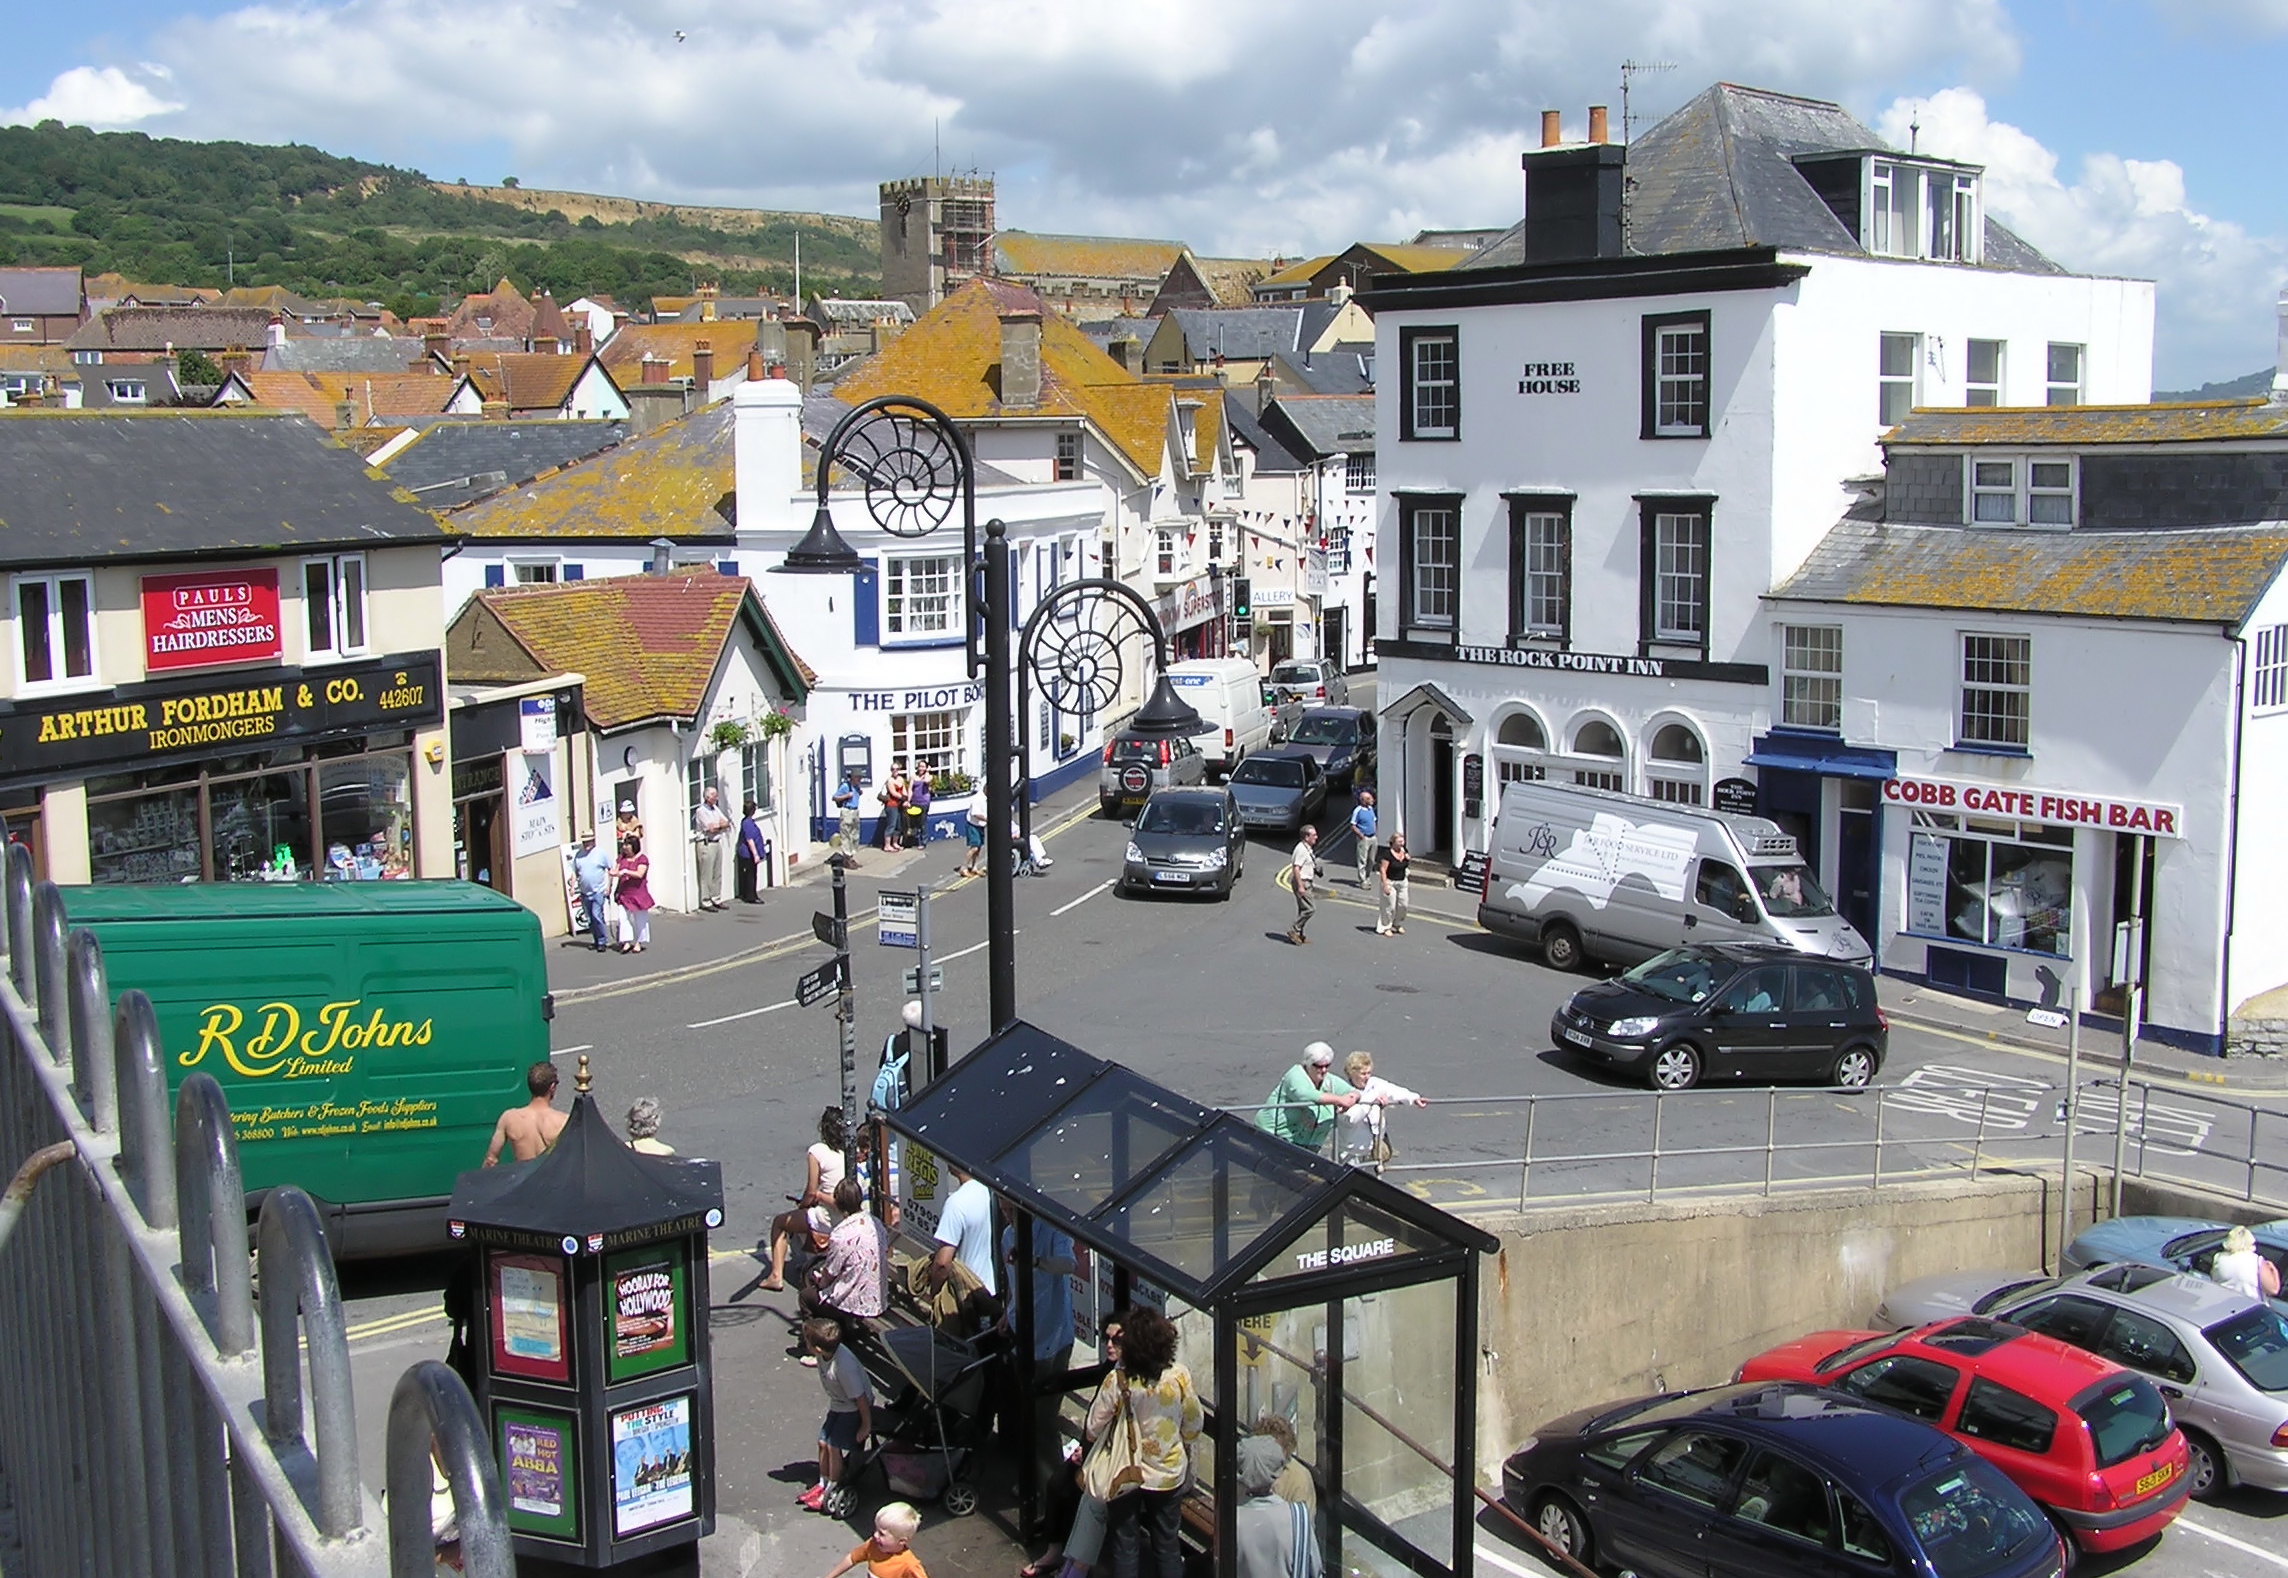 http://upload.wikimedia.org/wikipedia/commons/9/99/Lyme_regis_centre_arp.jpg